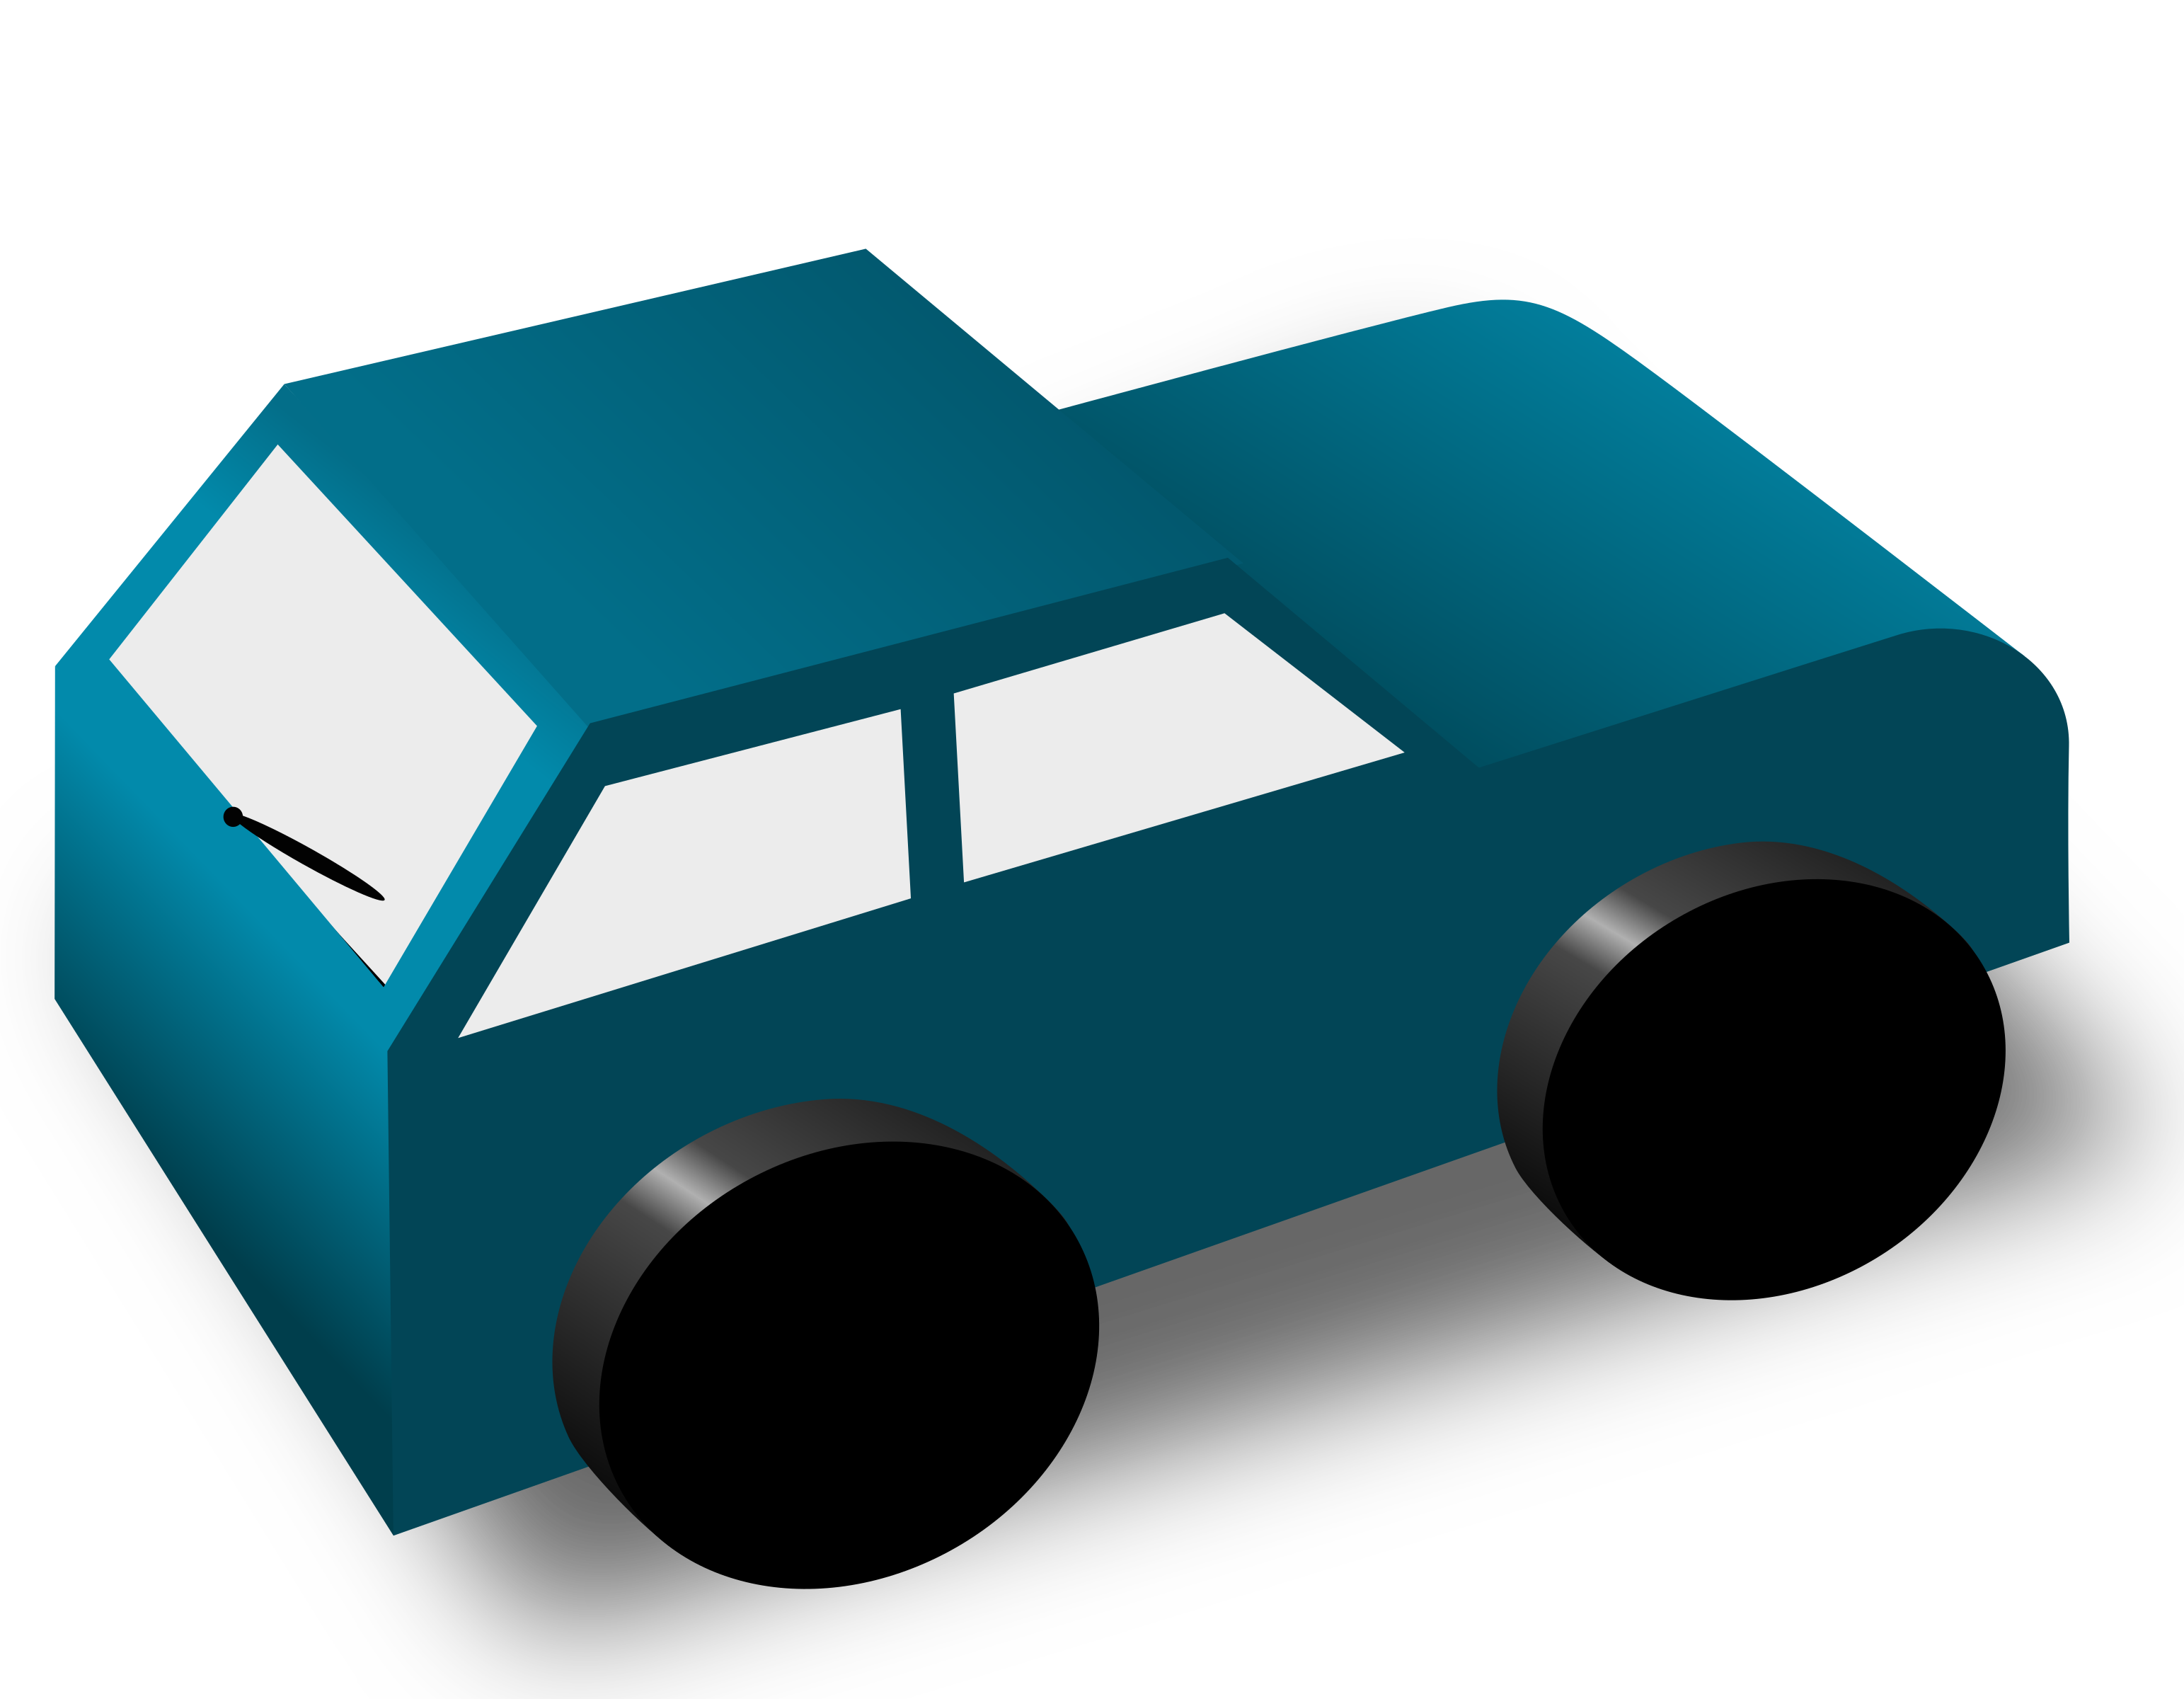 Back of car clipart clipart royalty free library Clipart - cartoon car back clipart royalty free library